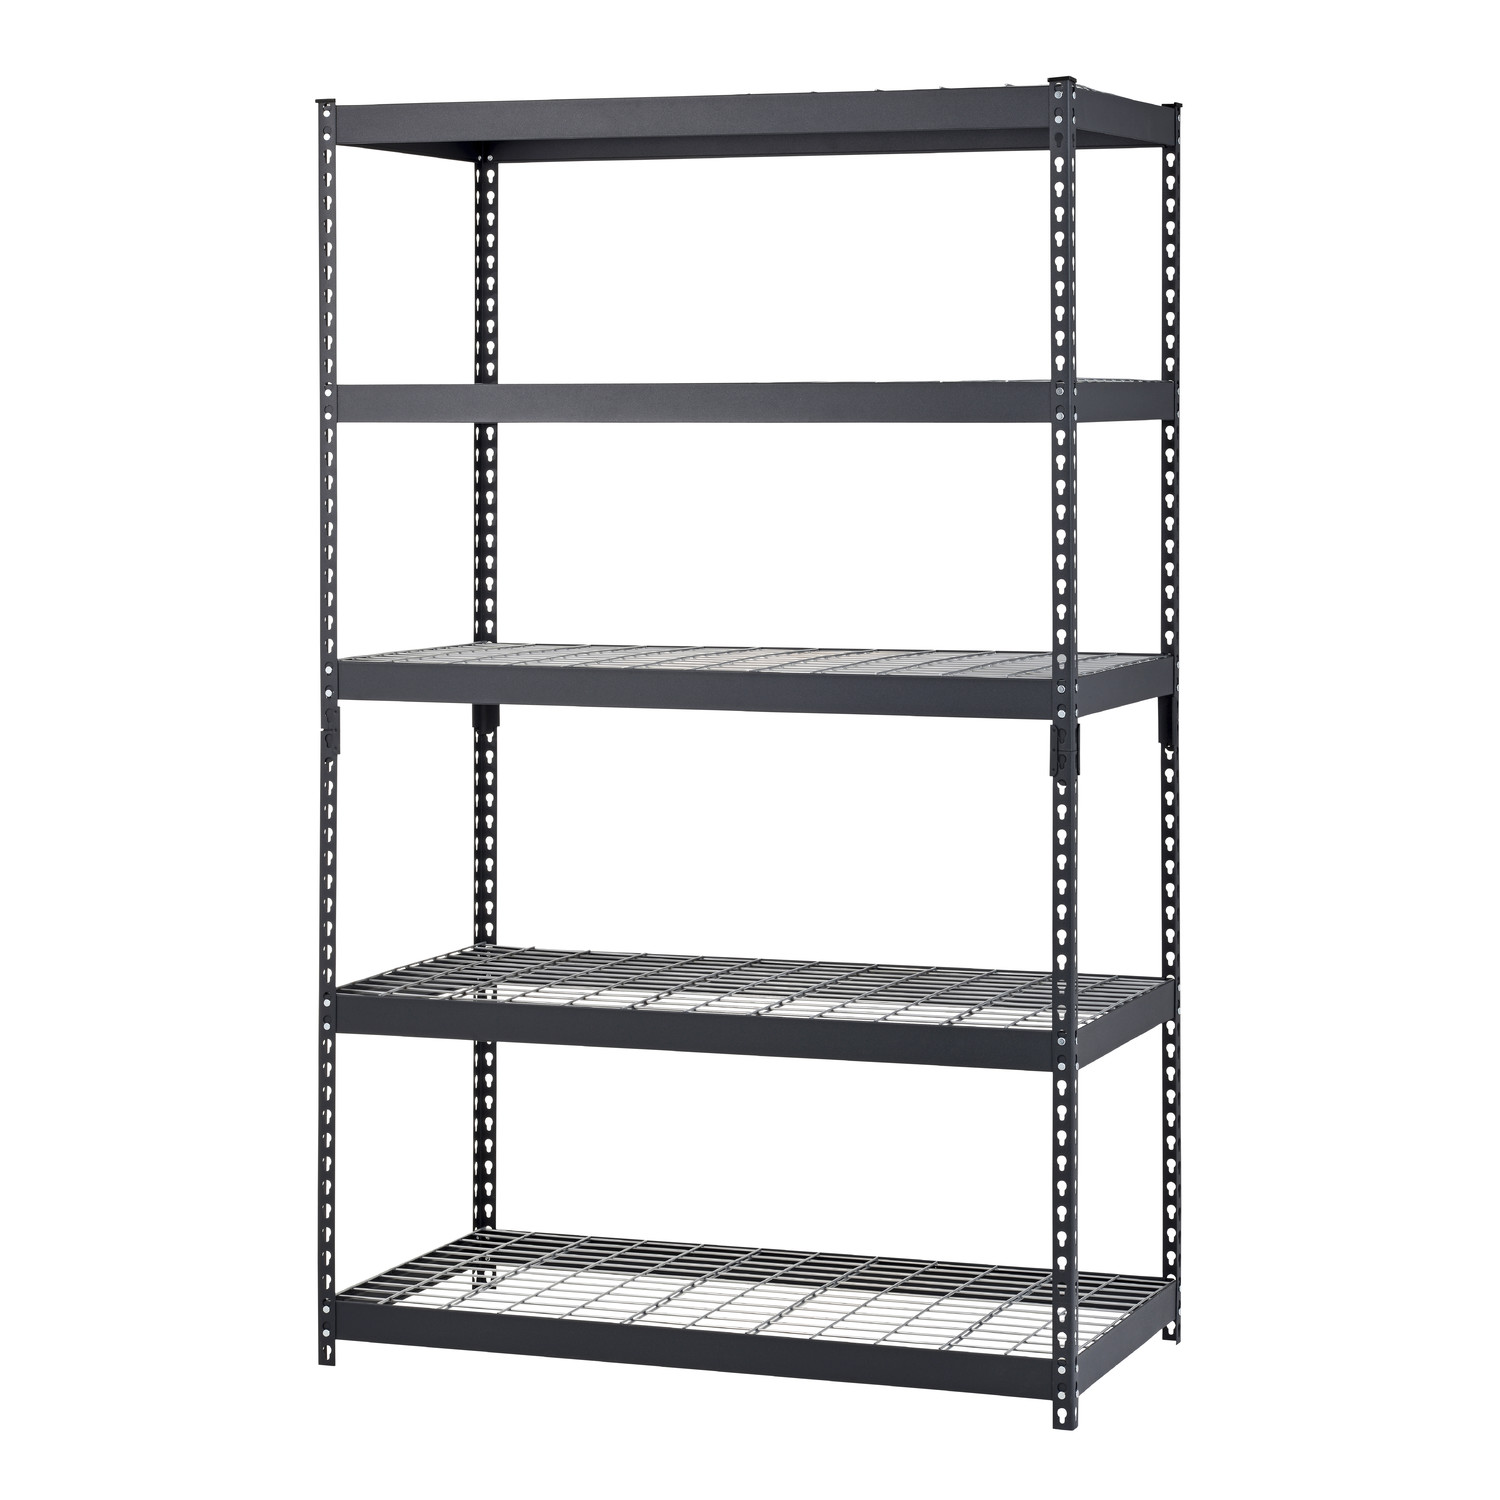 H Steel Five Shelf Heavy Duty Shelving Unit by edsal shelving for garage furniture ideas